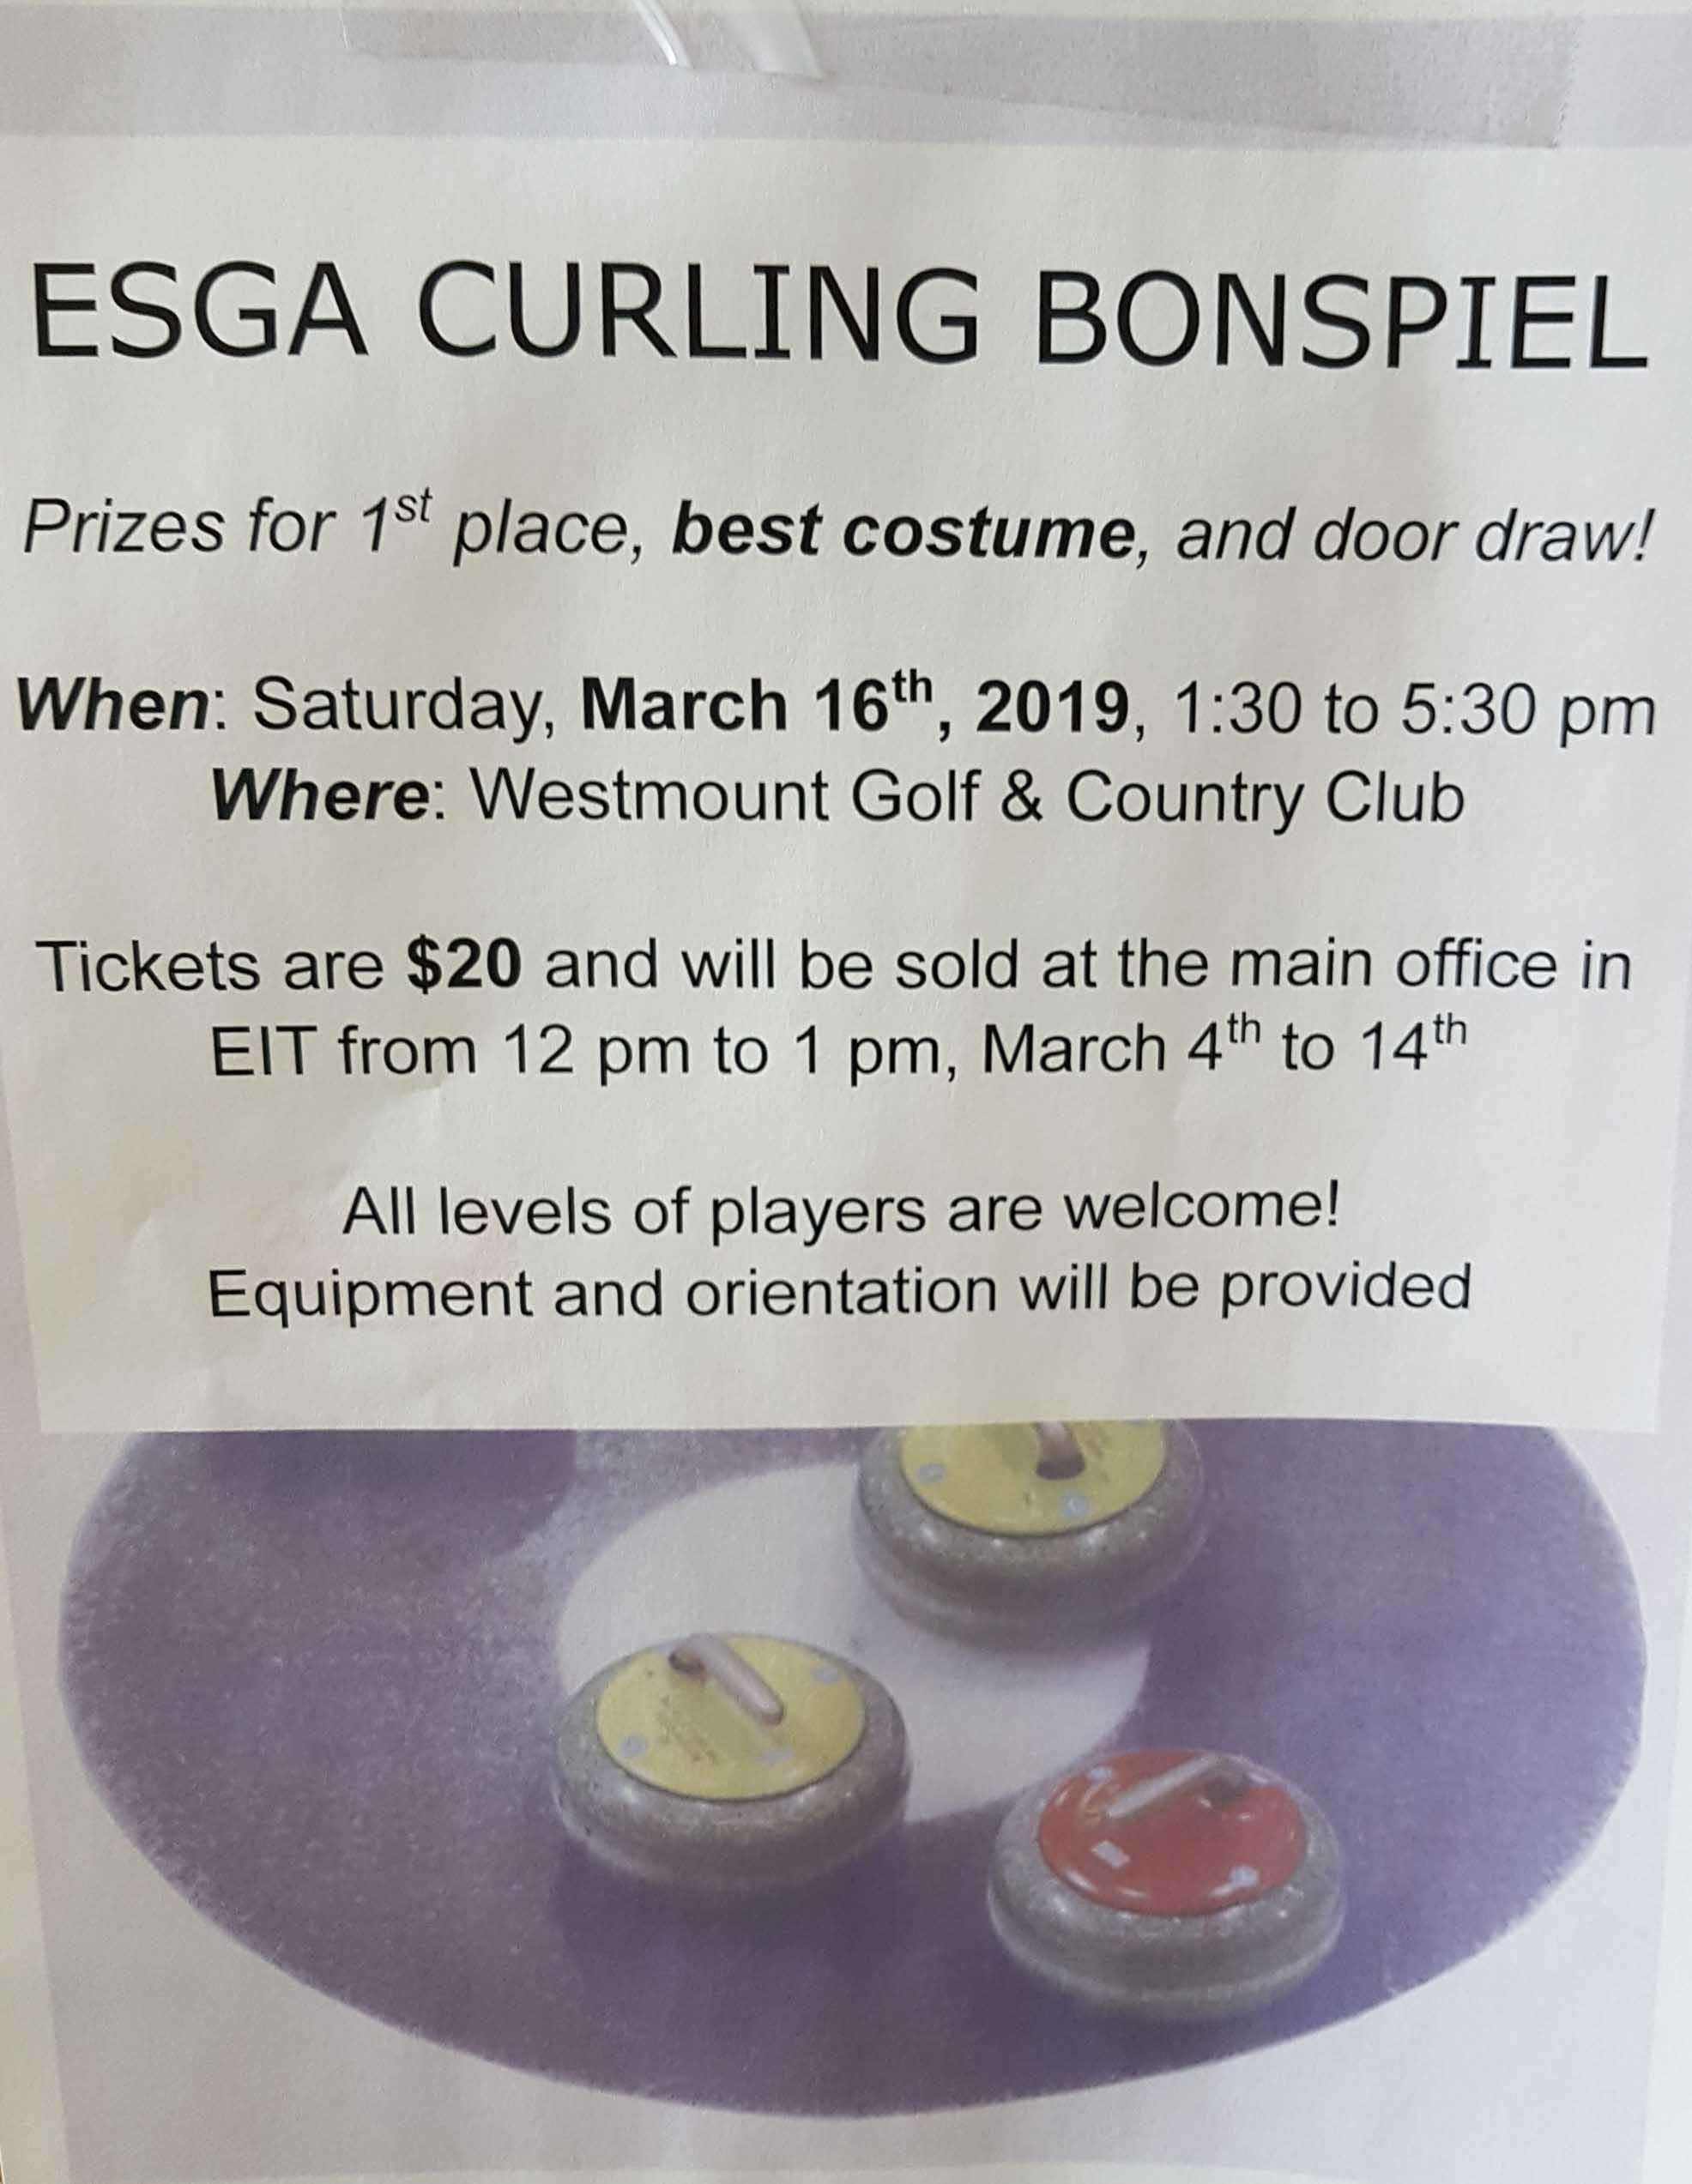 ESGA Curling Bonspiel March 16th 1:30-5:30 pm. Prize for best costume.